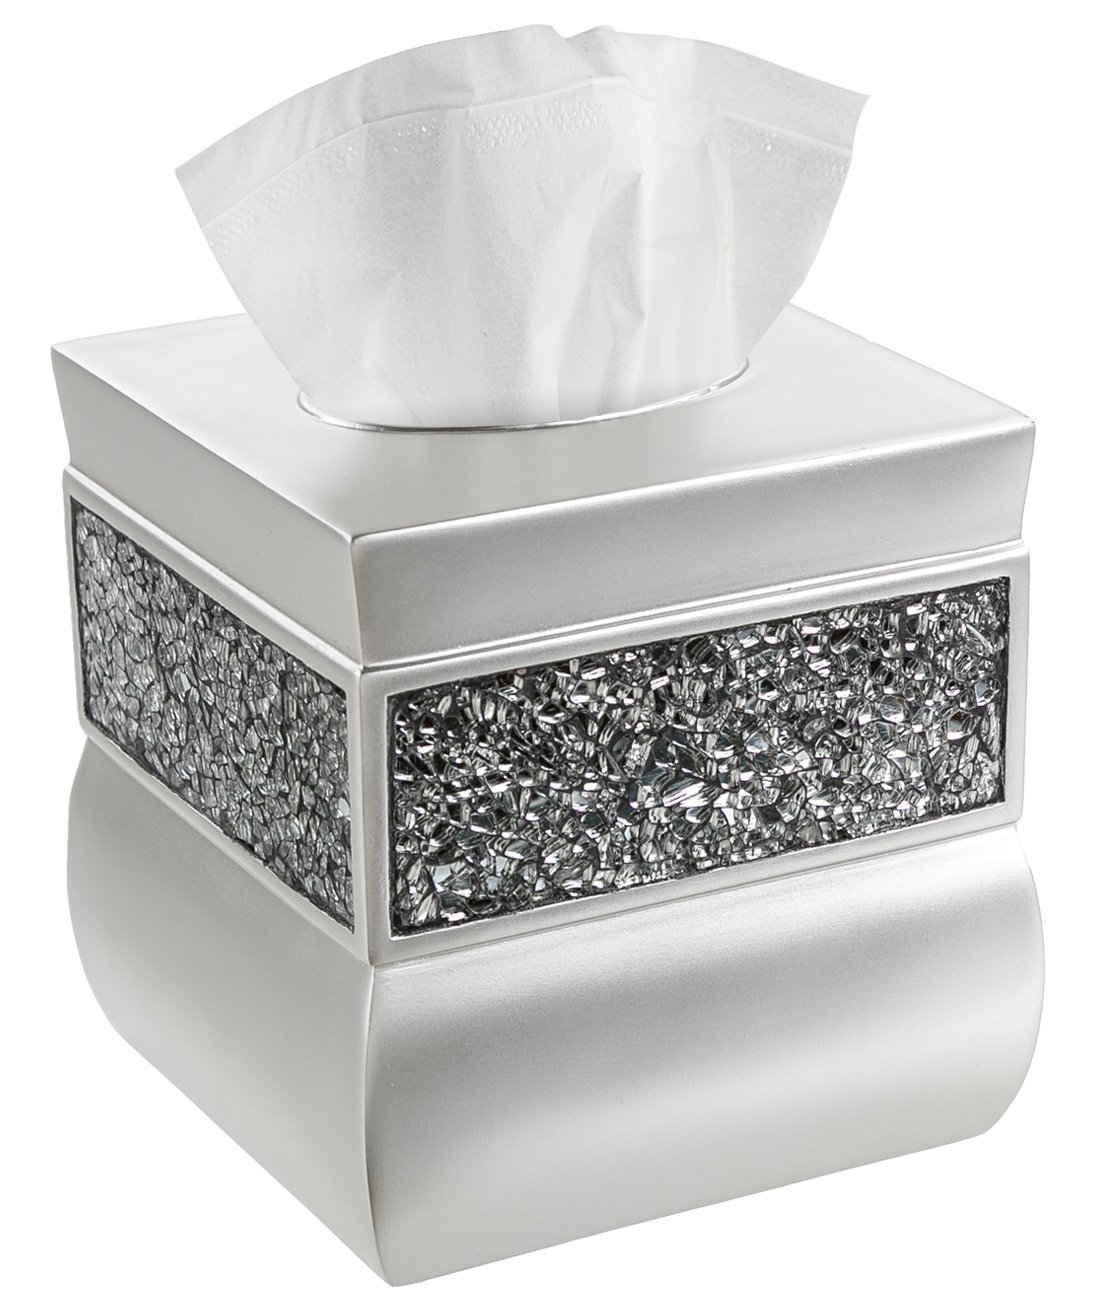 Creative Scents Square Tissue Box Cover - Decorative Tissue Holder is Finished in Beautiful Silver Colored Mosaic Glass, Bathroom Accessories by Creative Scents